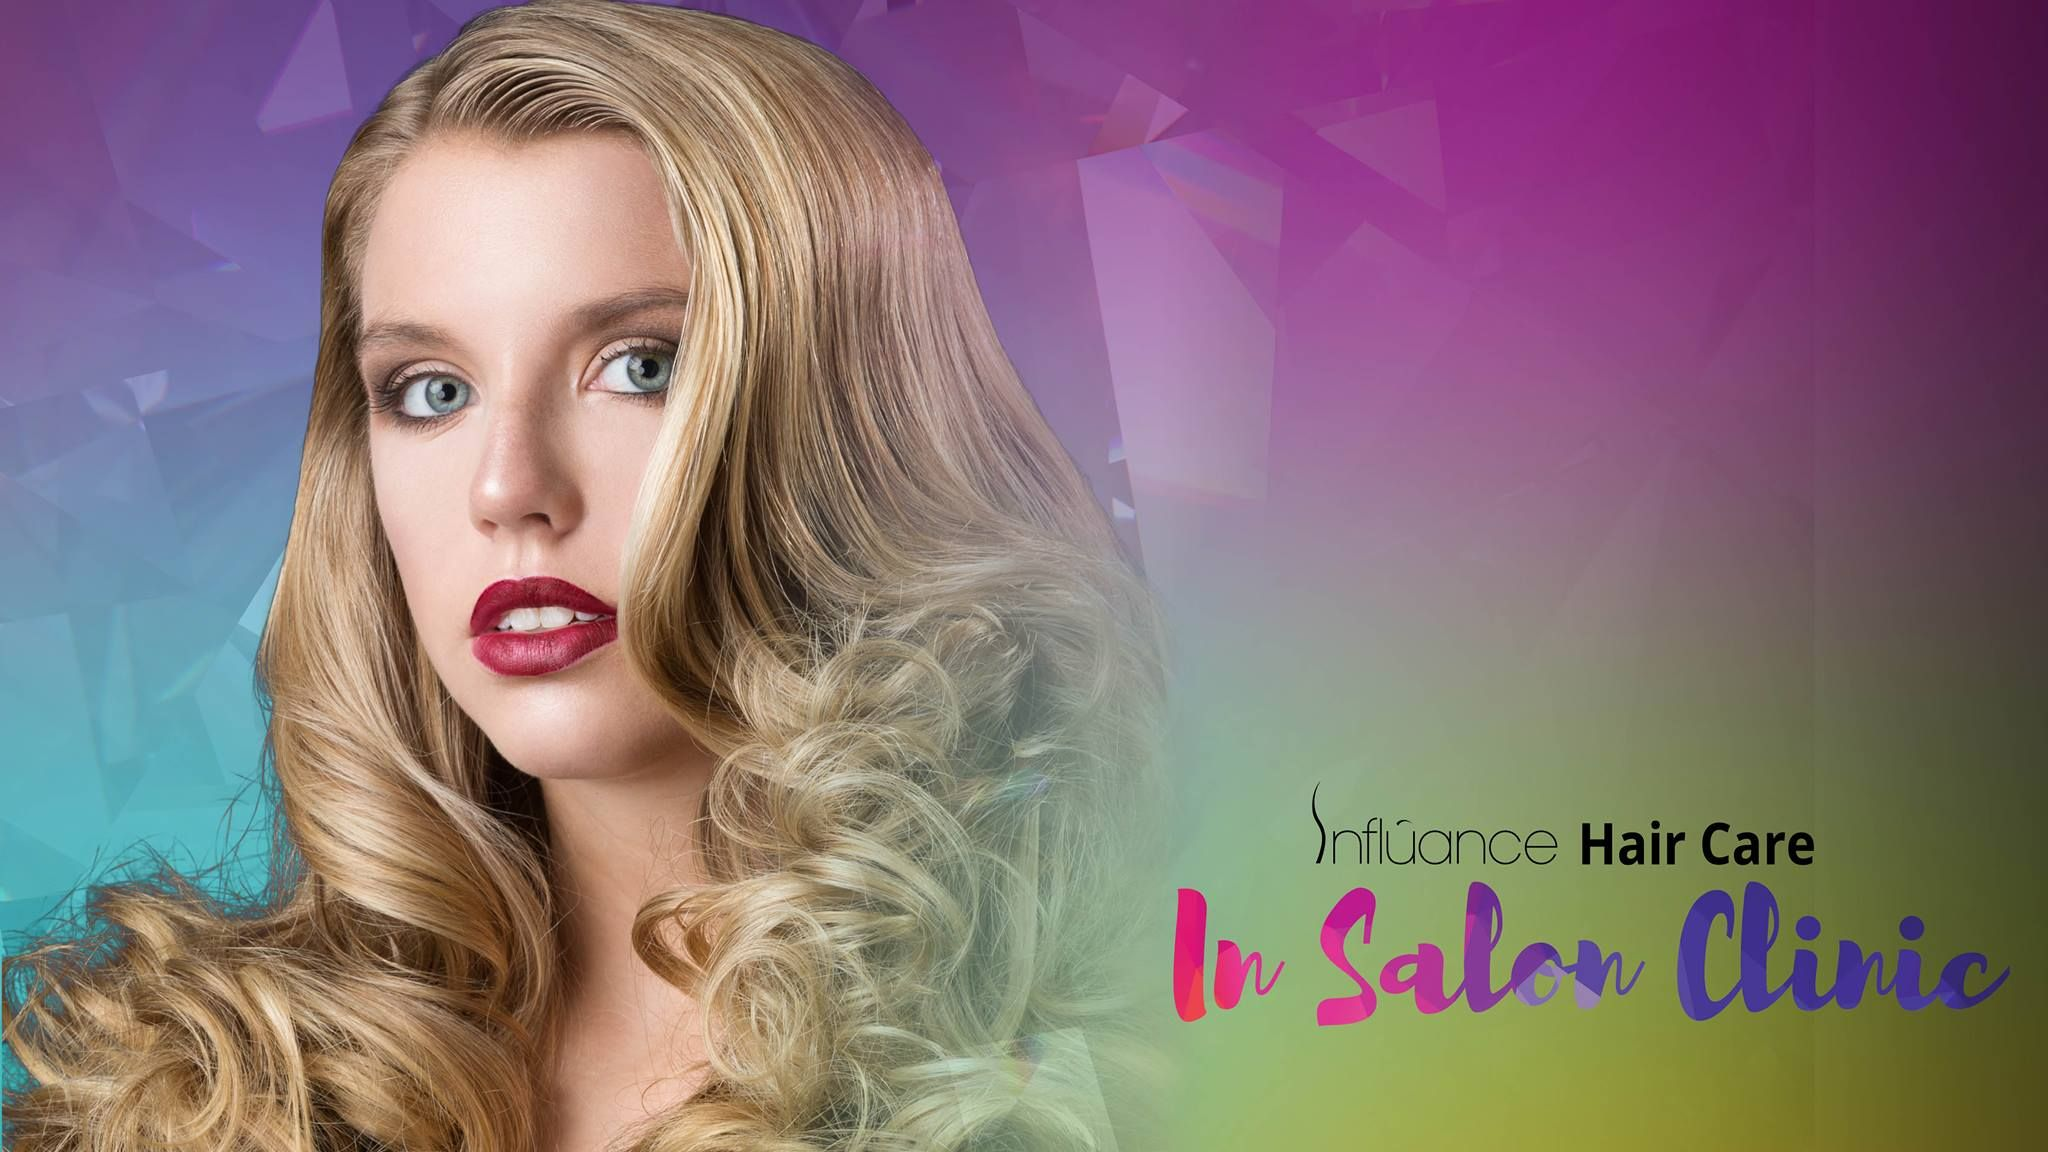 Check out Influance Hair Care events page for an In Salon